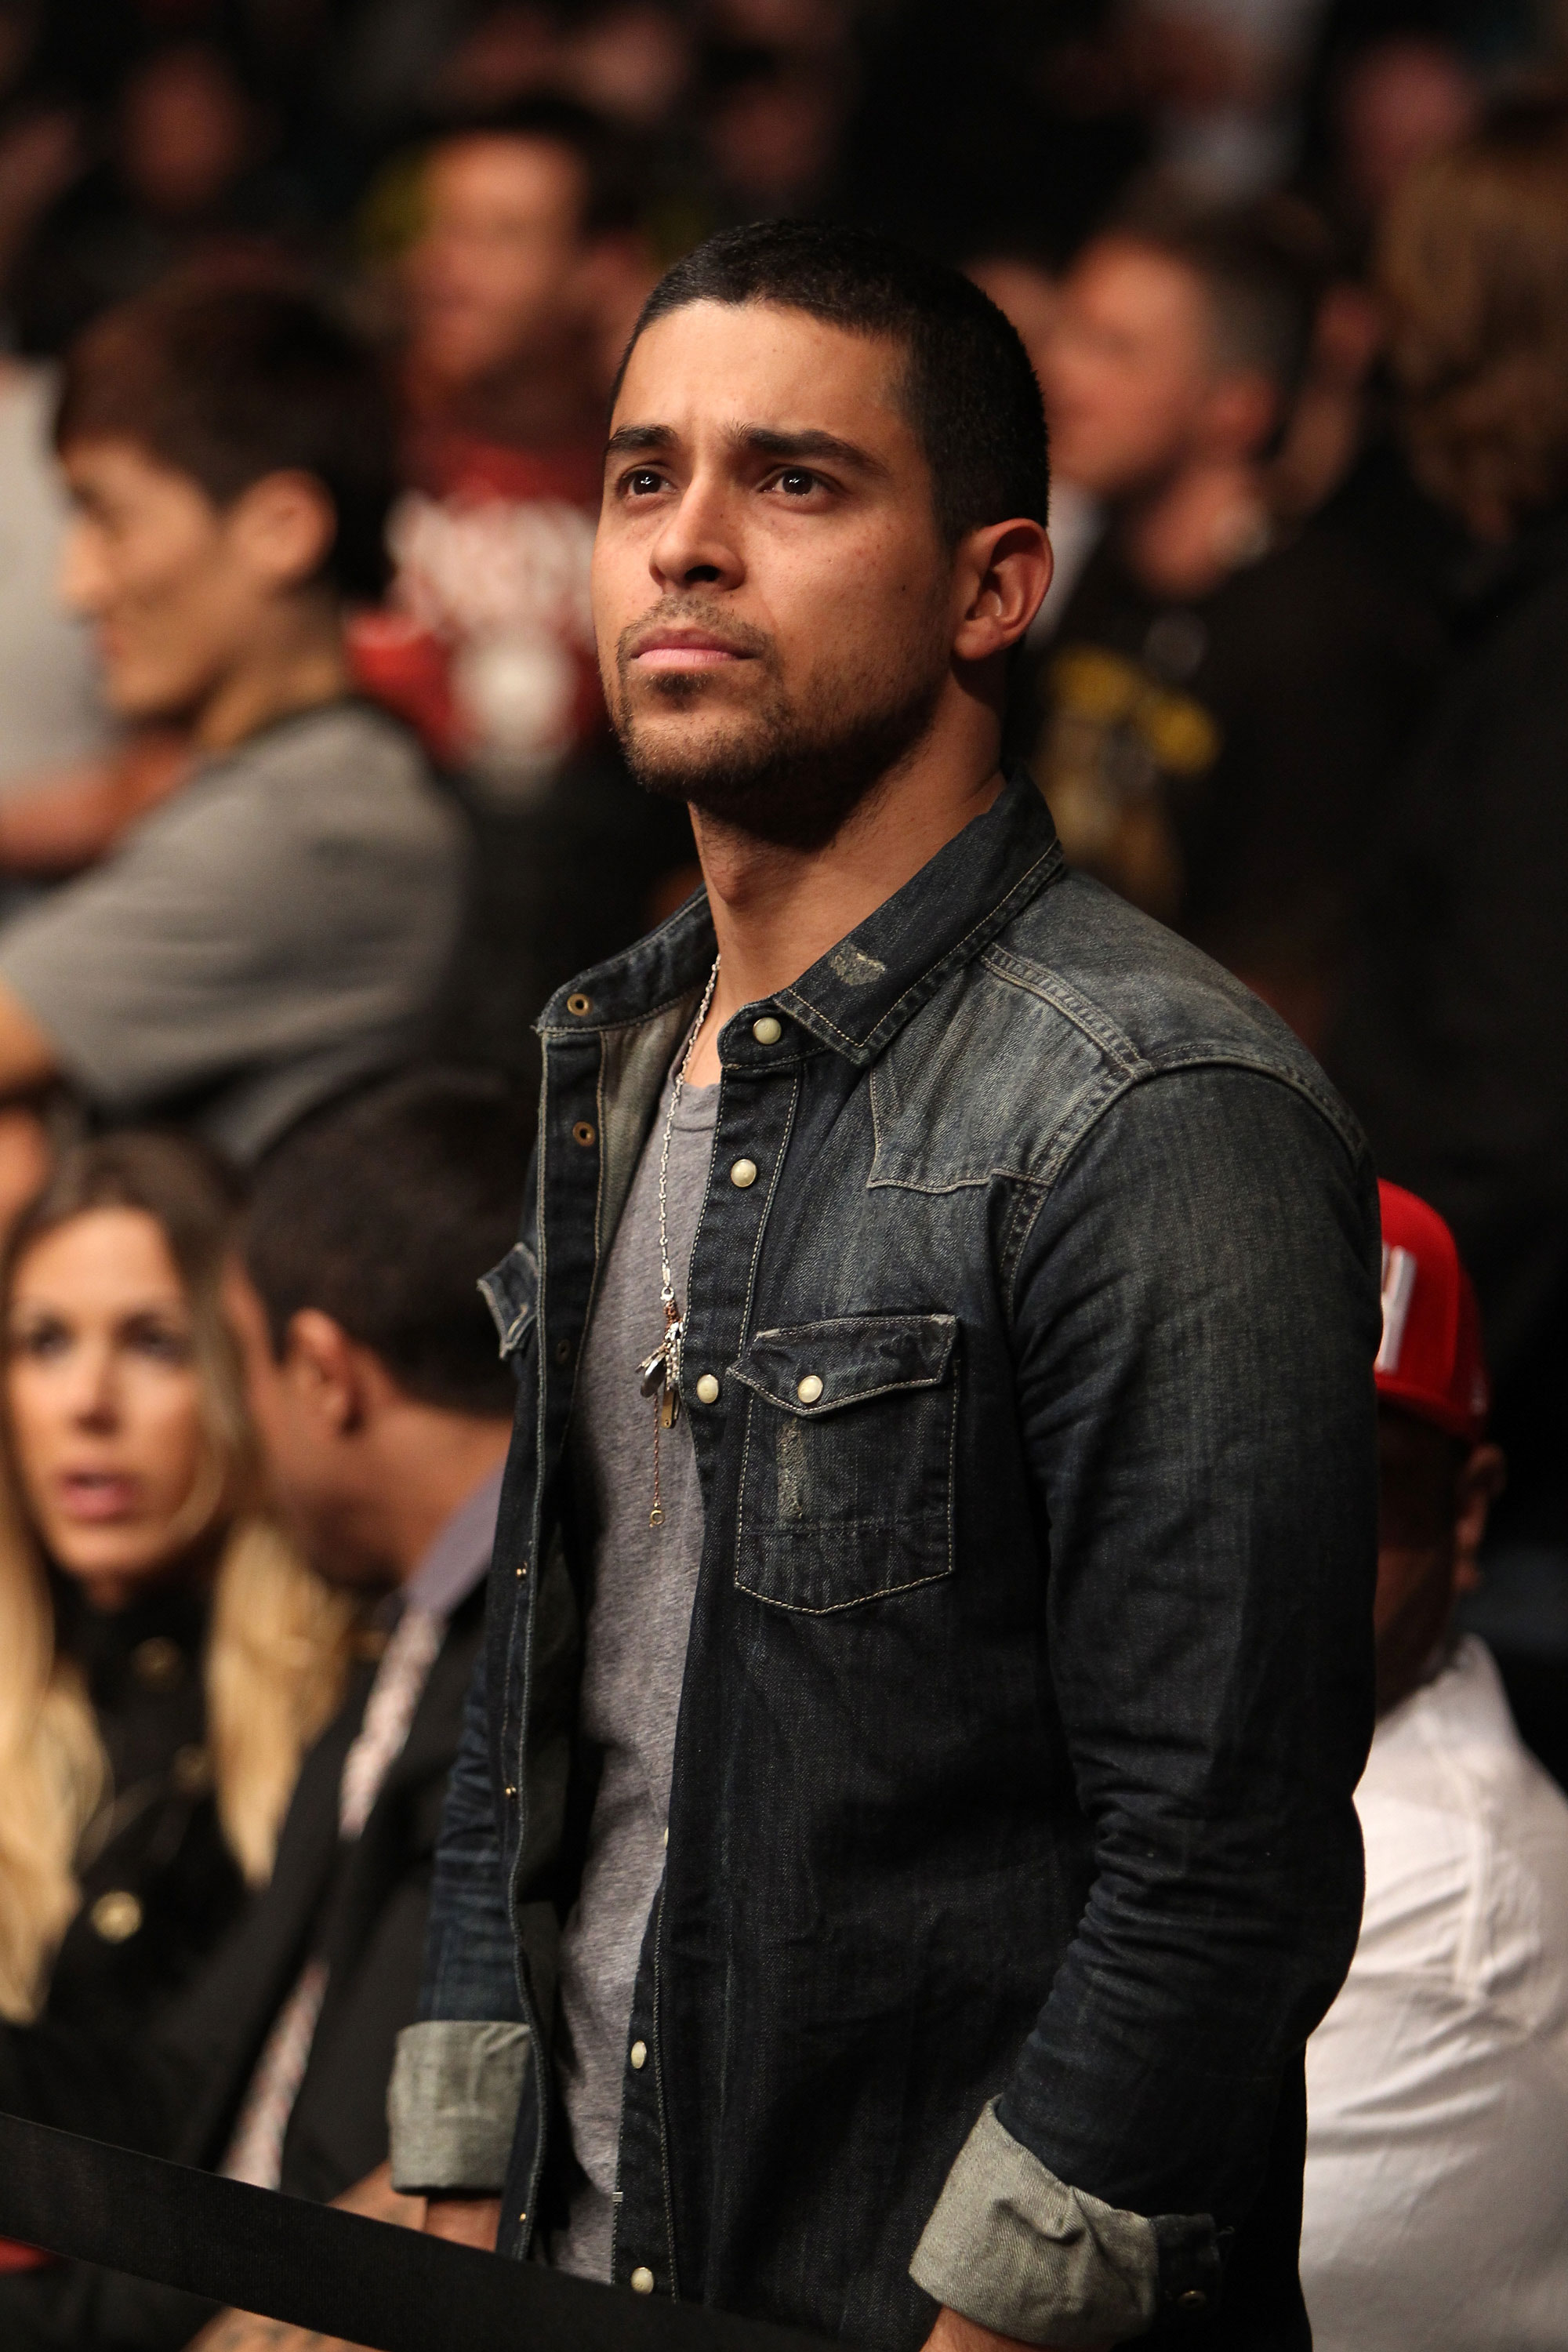 LAS VEGAS, NV - DECEMBER 30:  Wilmer Valderrama watches the Jon Fitch/Johny Hendricks fight during the UFC 141 event at the MGM Grand Garden Arena on December 30, 2011 in Las Vegas, Nevada.  (Photo by Josh Hedges/Zuffa LLC/Zuffa LLC via Getty Images) *** Local Caption *** Wilmer Valderrama